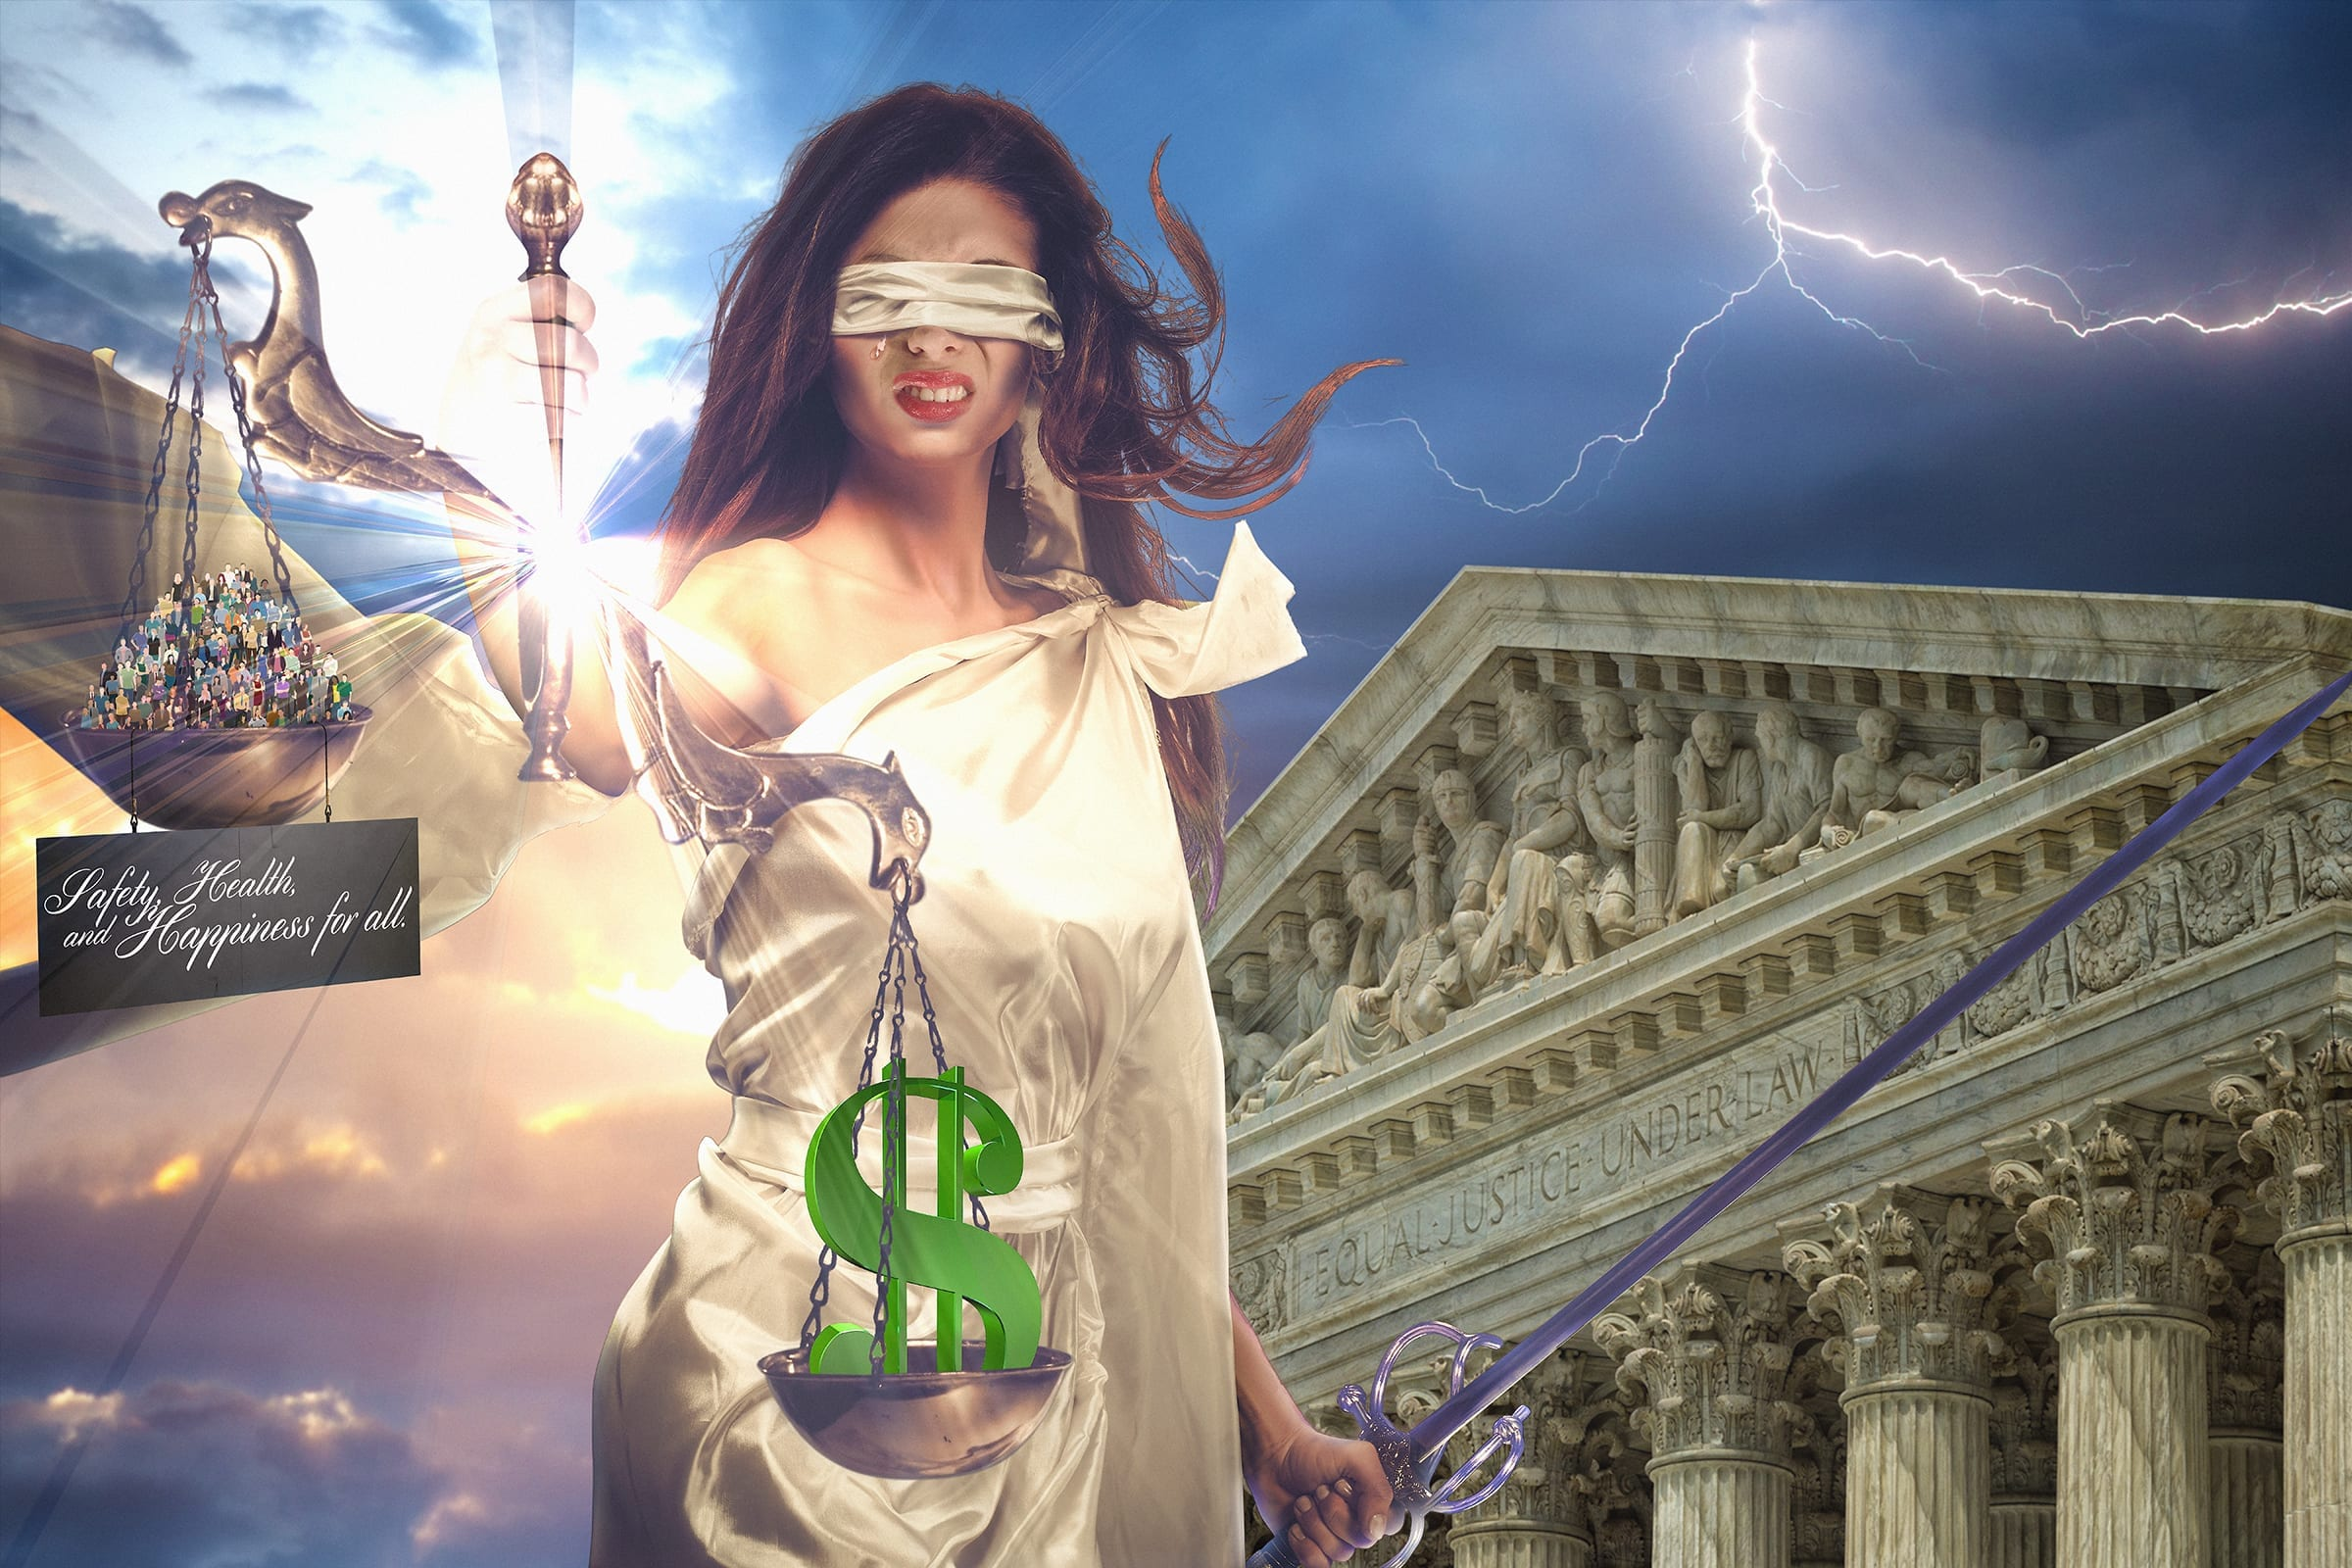 Lady Justice weeping as money tips the scales over the people; graphic by Neil Angeles.